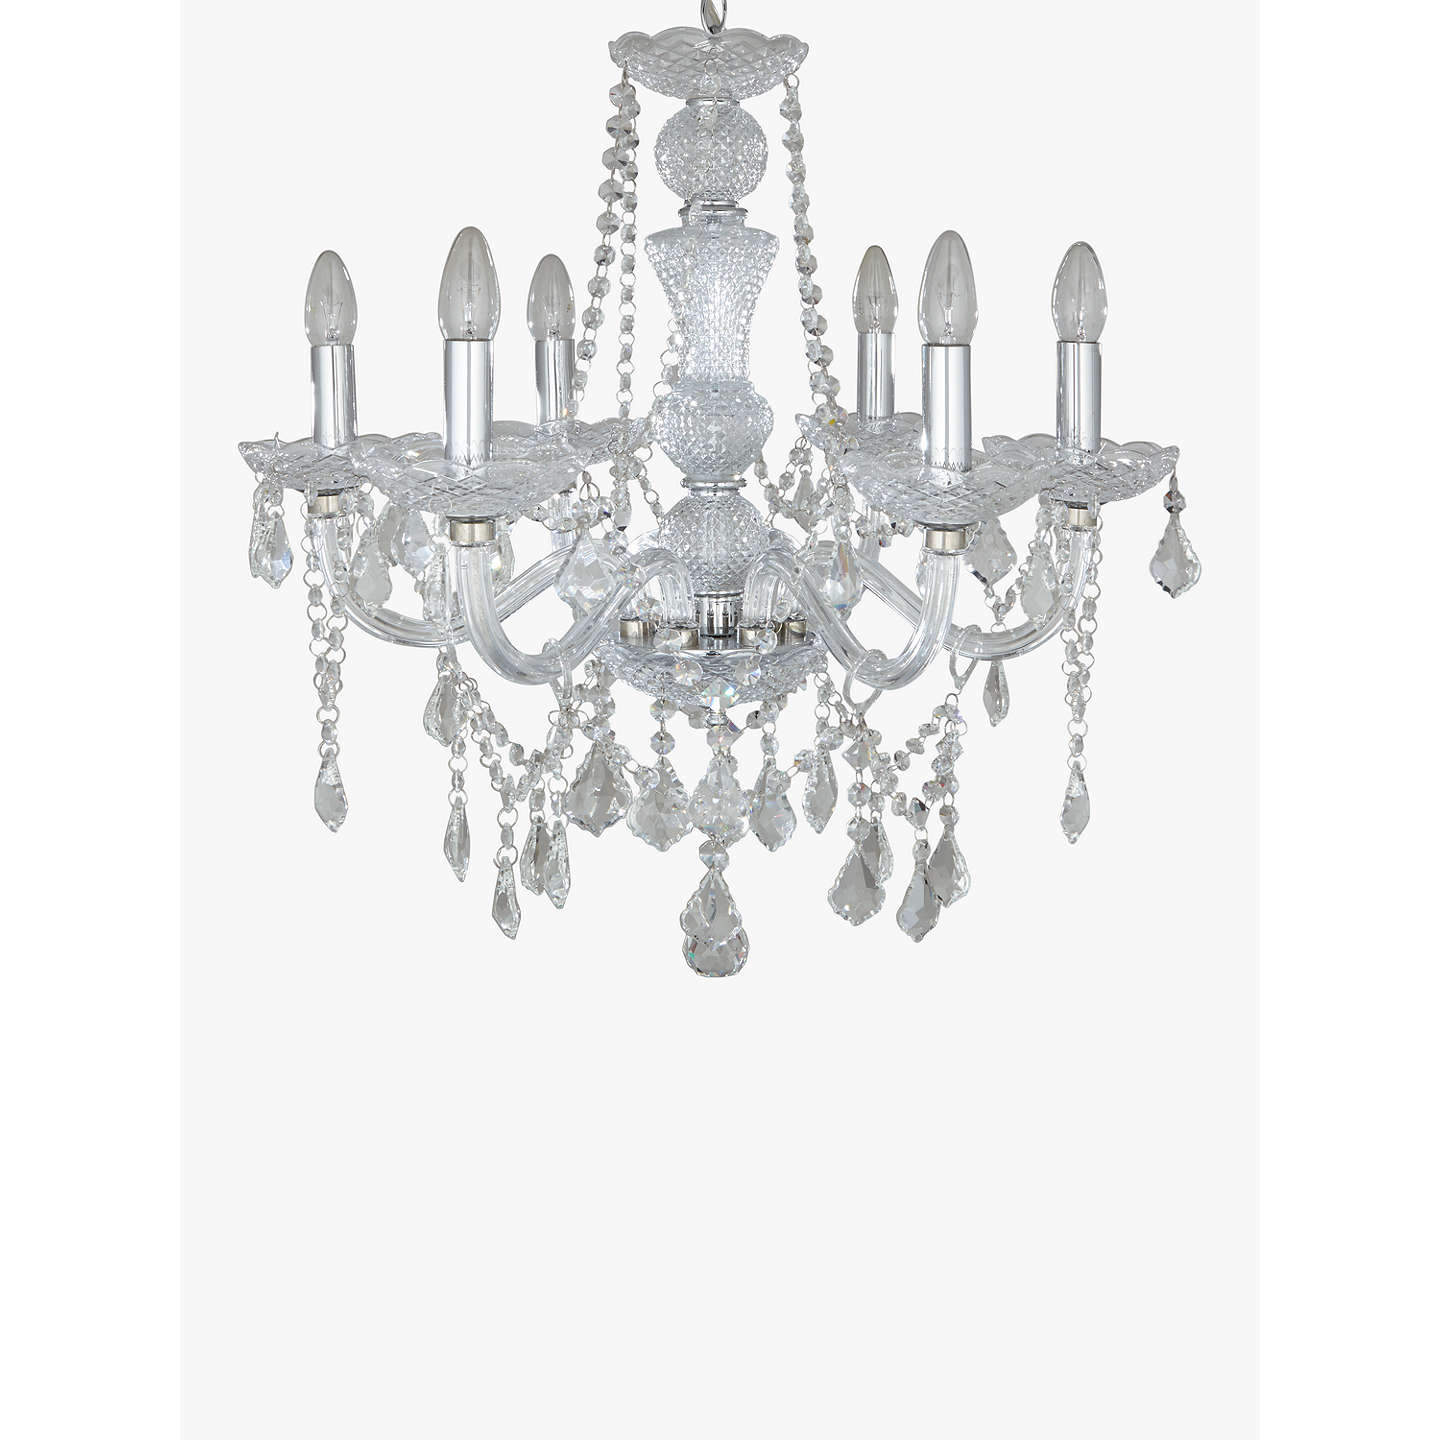 John lewis bethany chandelier 6 arm at john lewis buyjohn lewis bethany chandelier 6 arm online at johnlewis mozeypictures Image collections